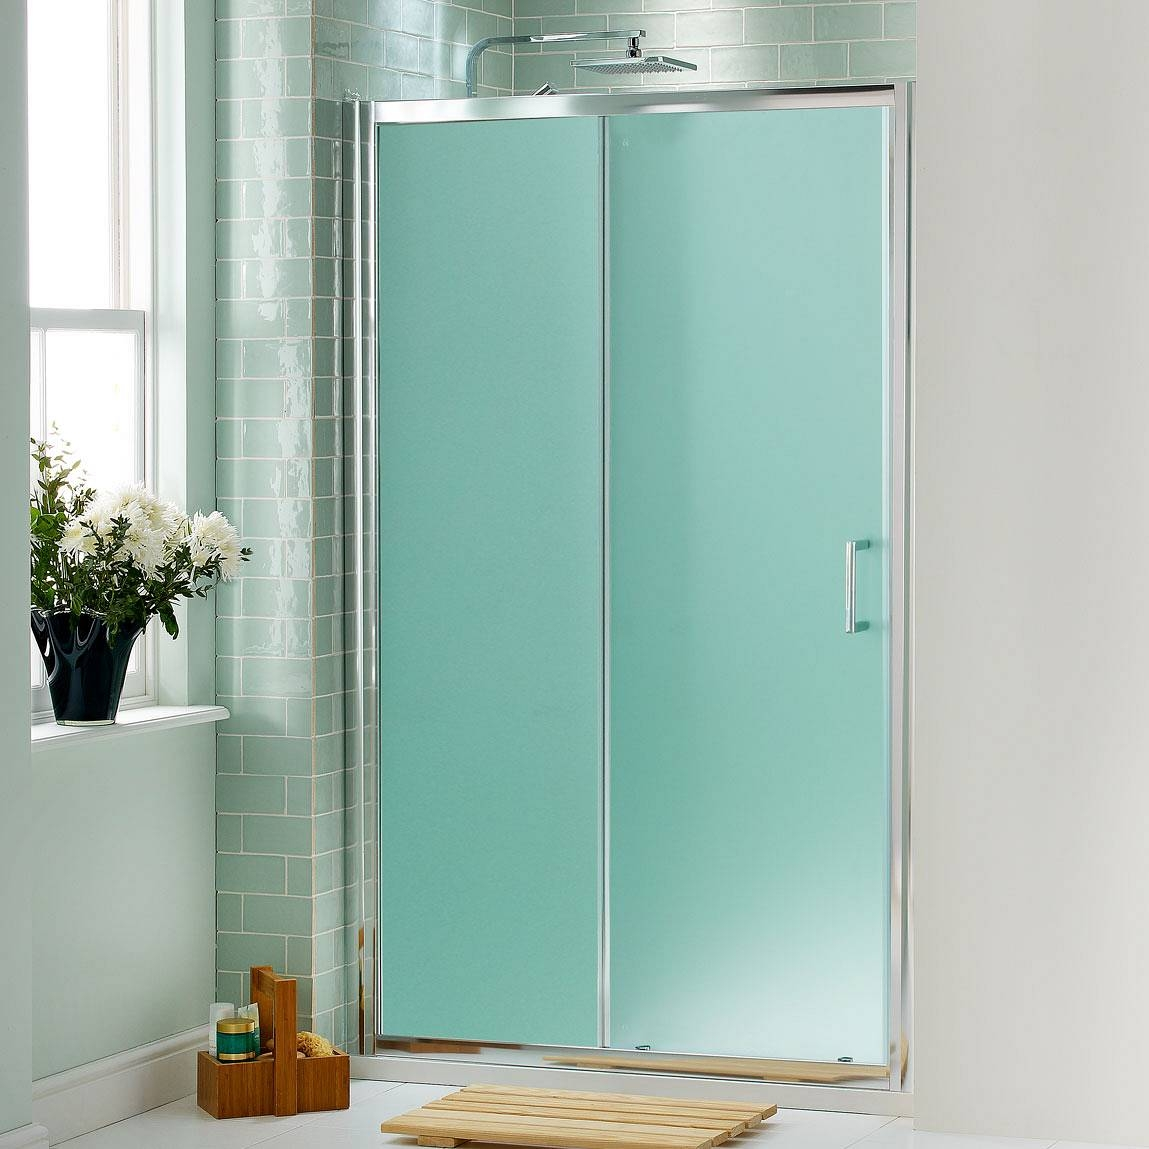 Smoked Glass Sliding Shower Doors